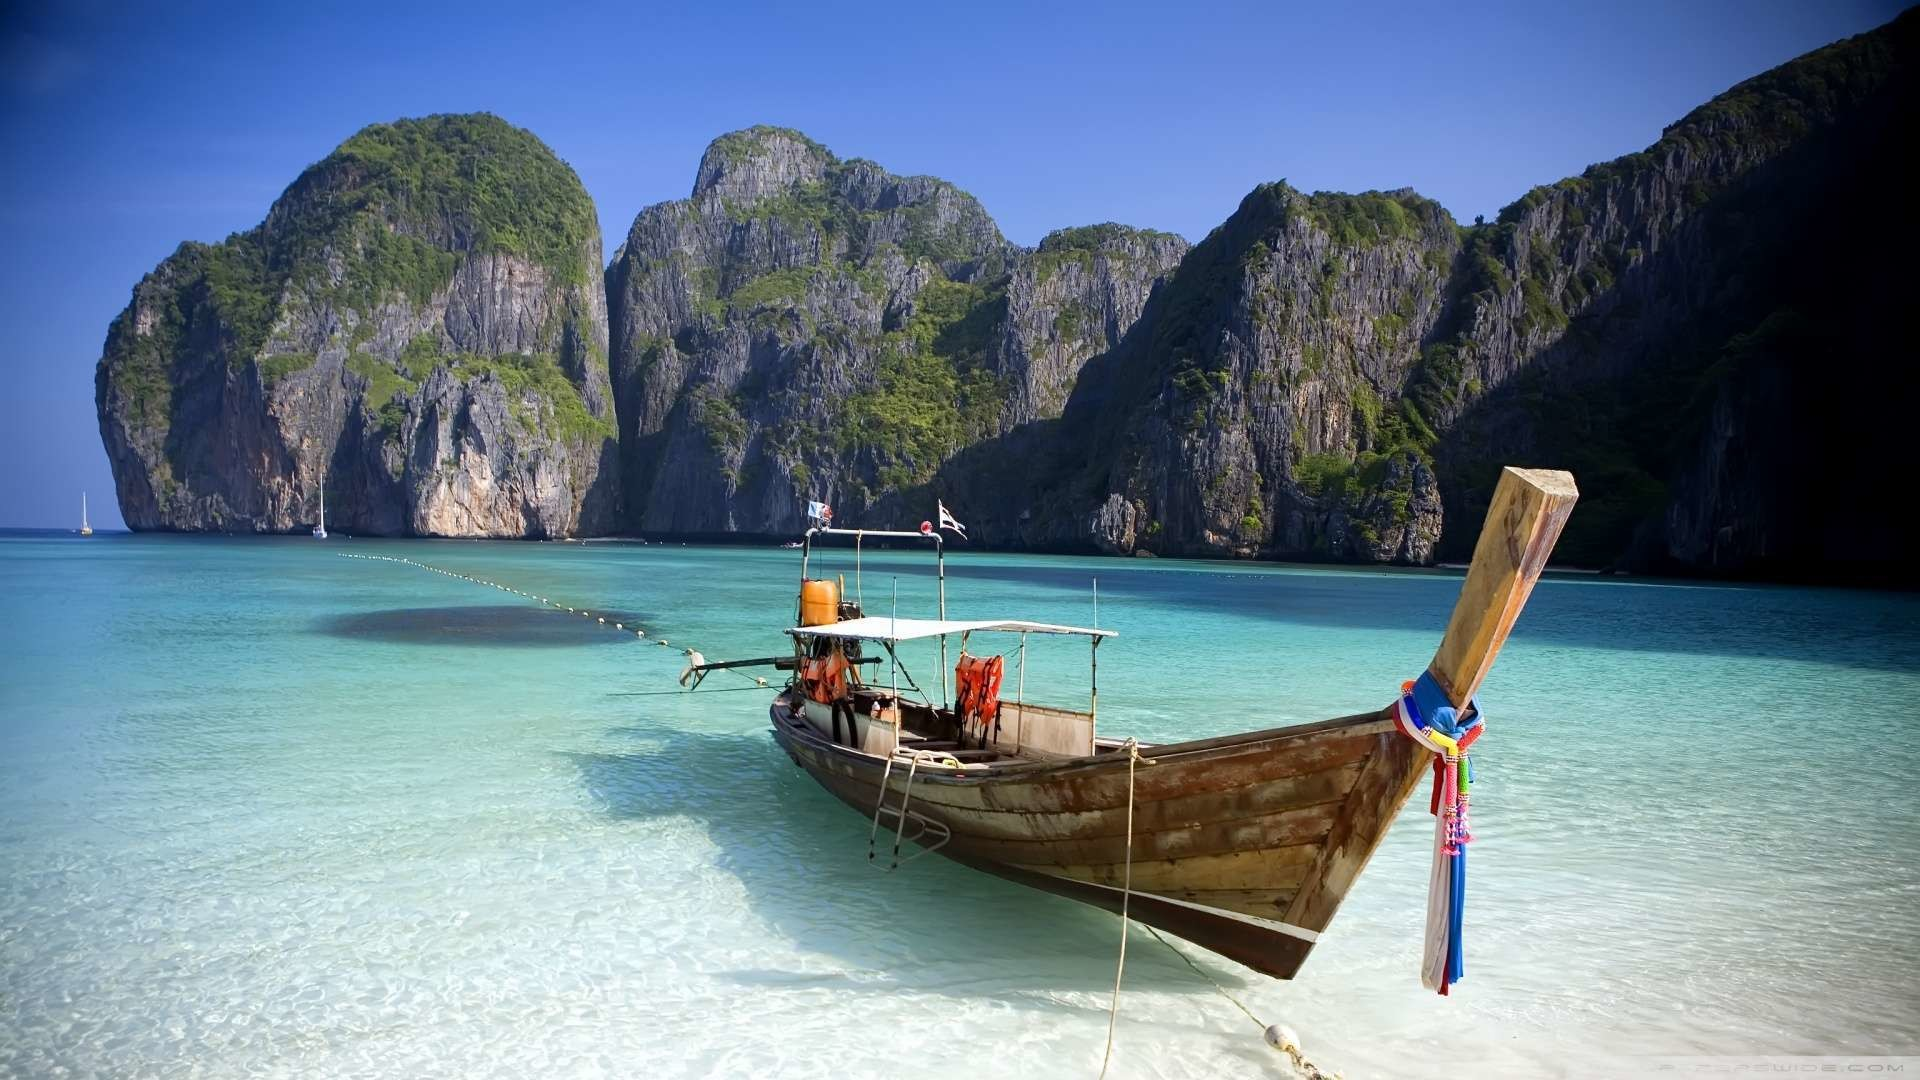 Thailand Beach Wallpaper 1080p HD